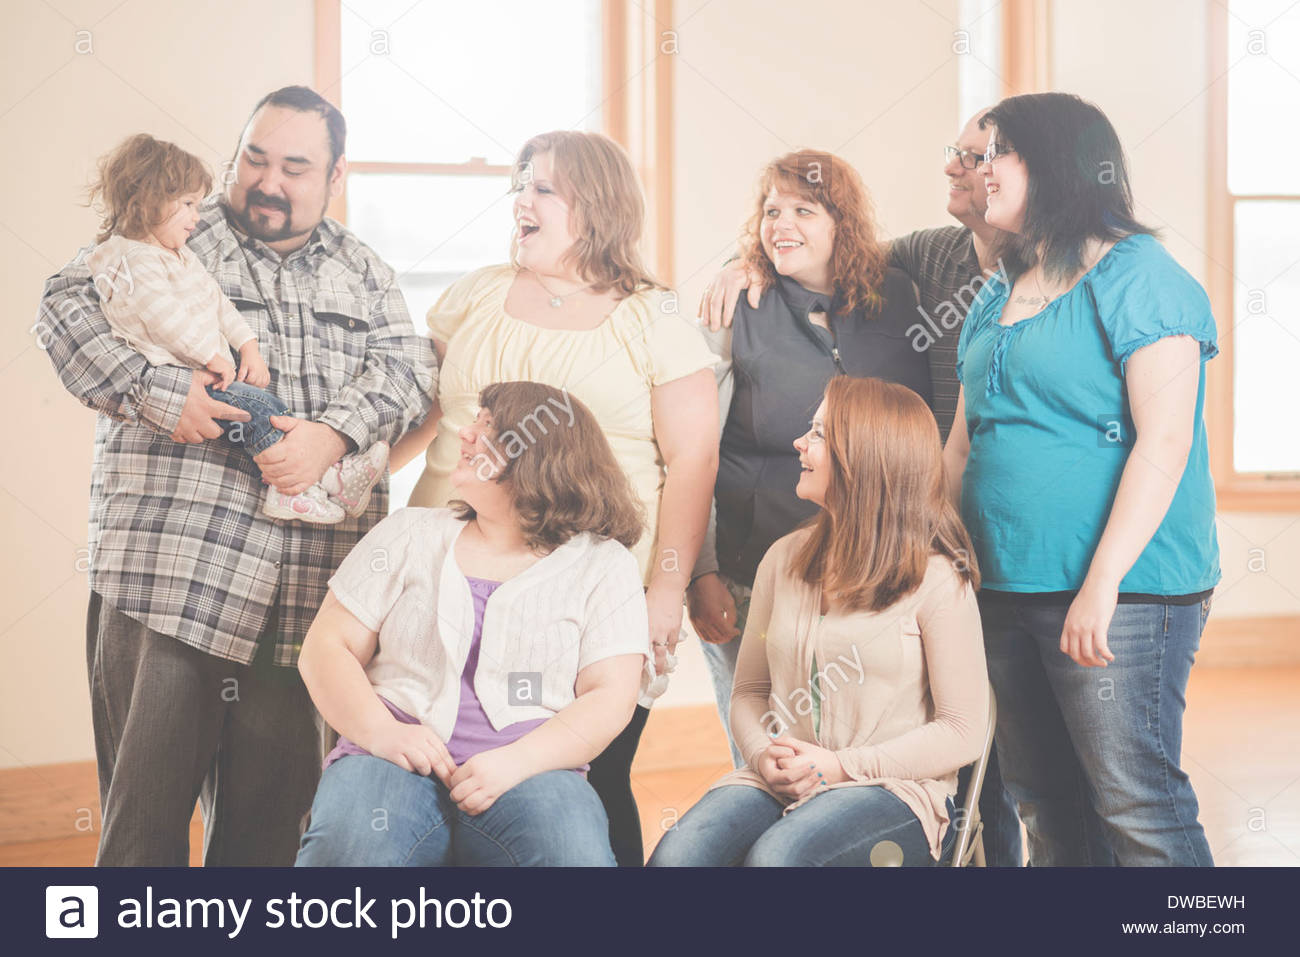 Family group portrait of three generations - Stock Image